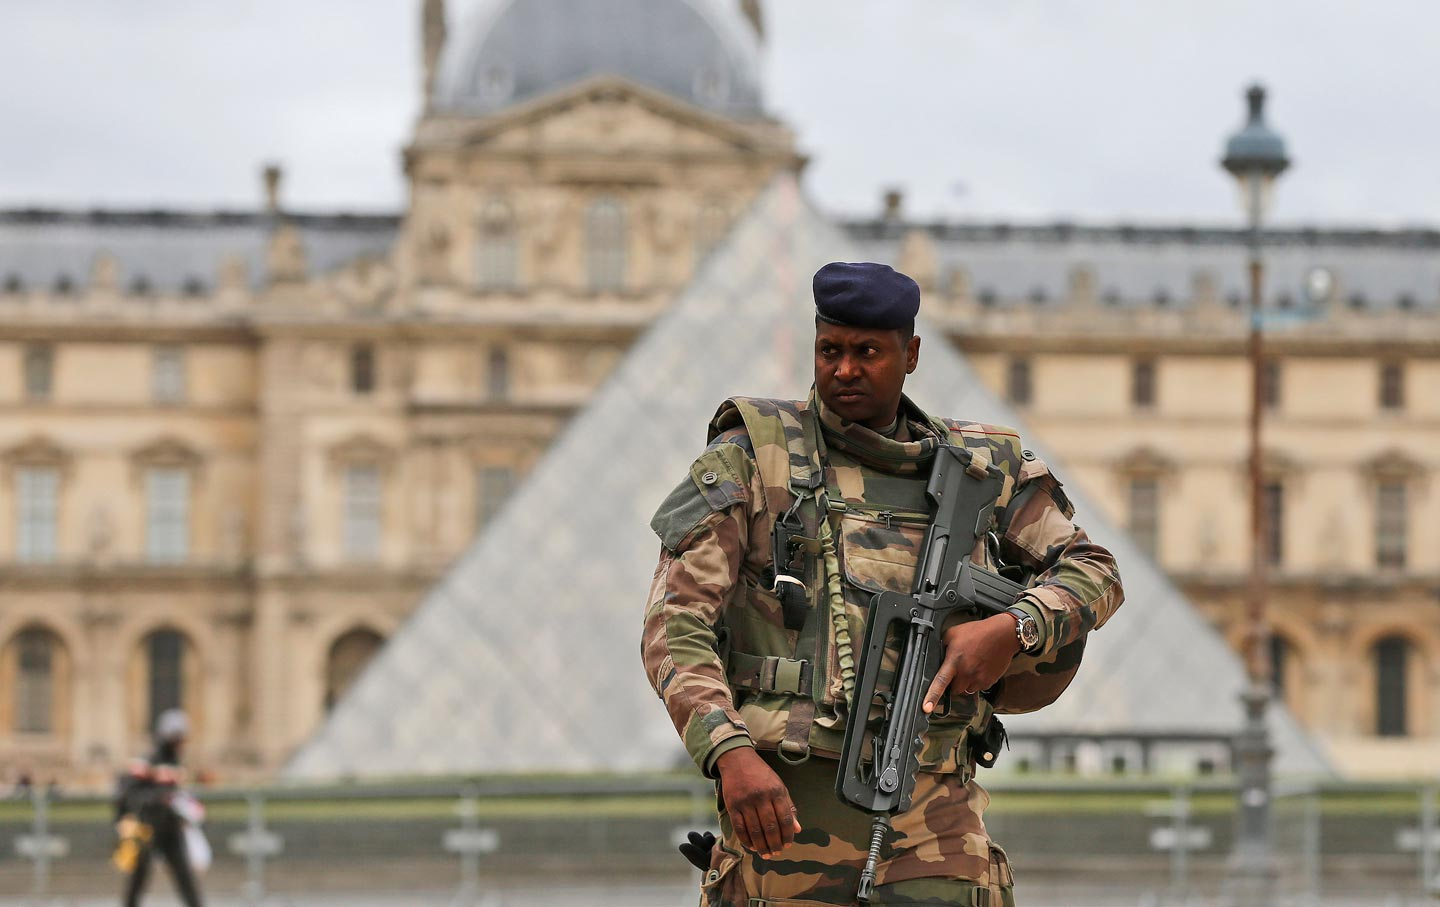 French_Soldier_Louvre_ap_img